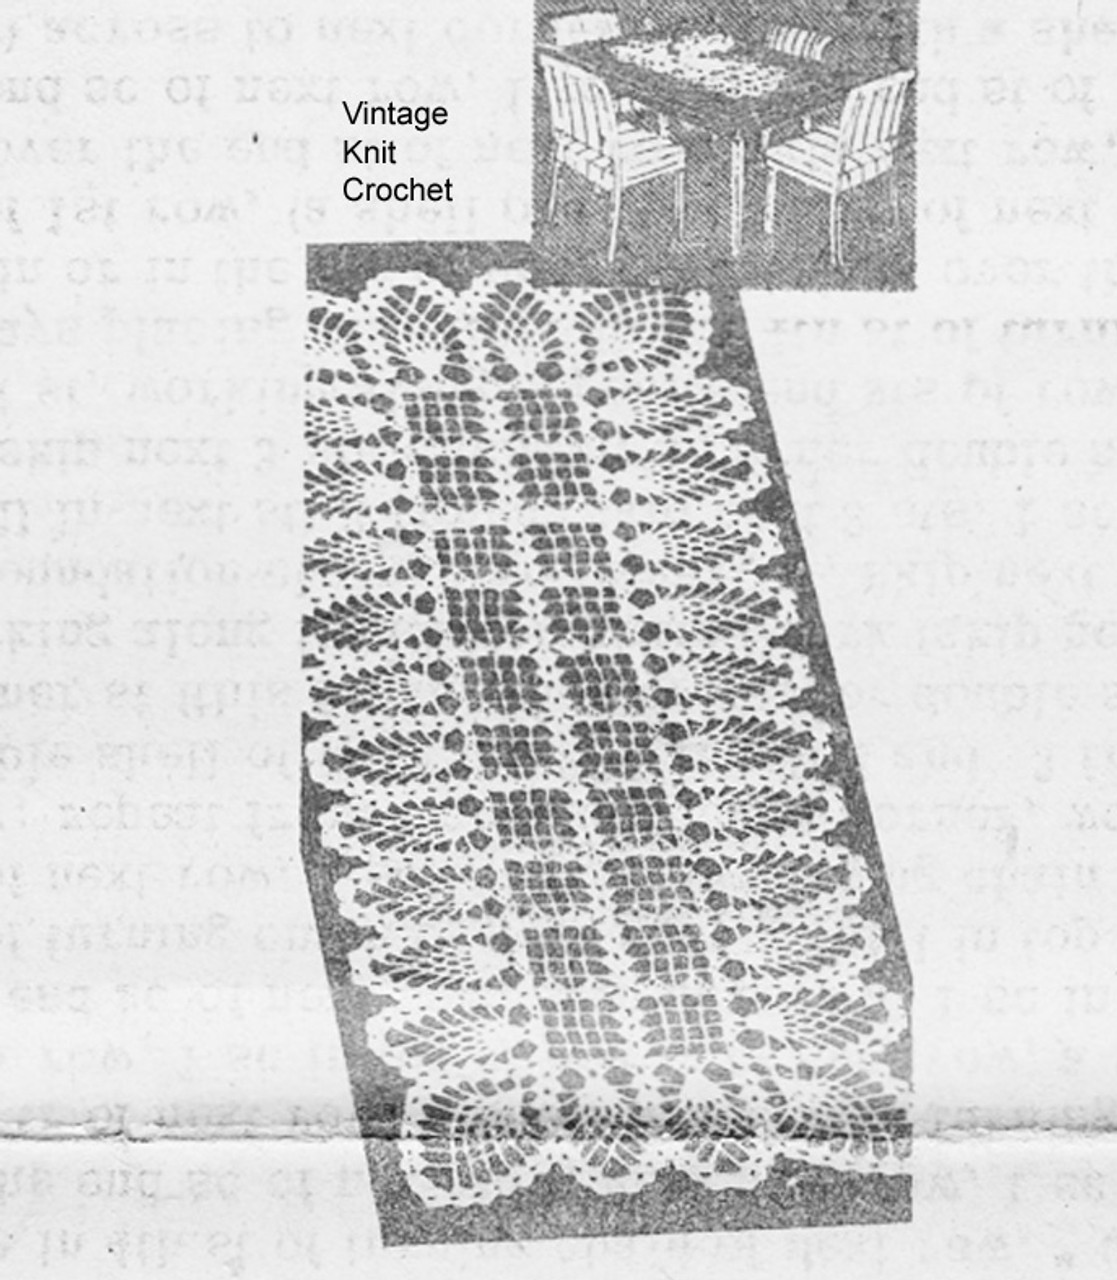 Vintage Pineapple Scarf Crochet Pattern, Laura Wheeler 7006